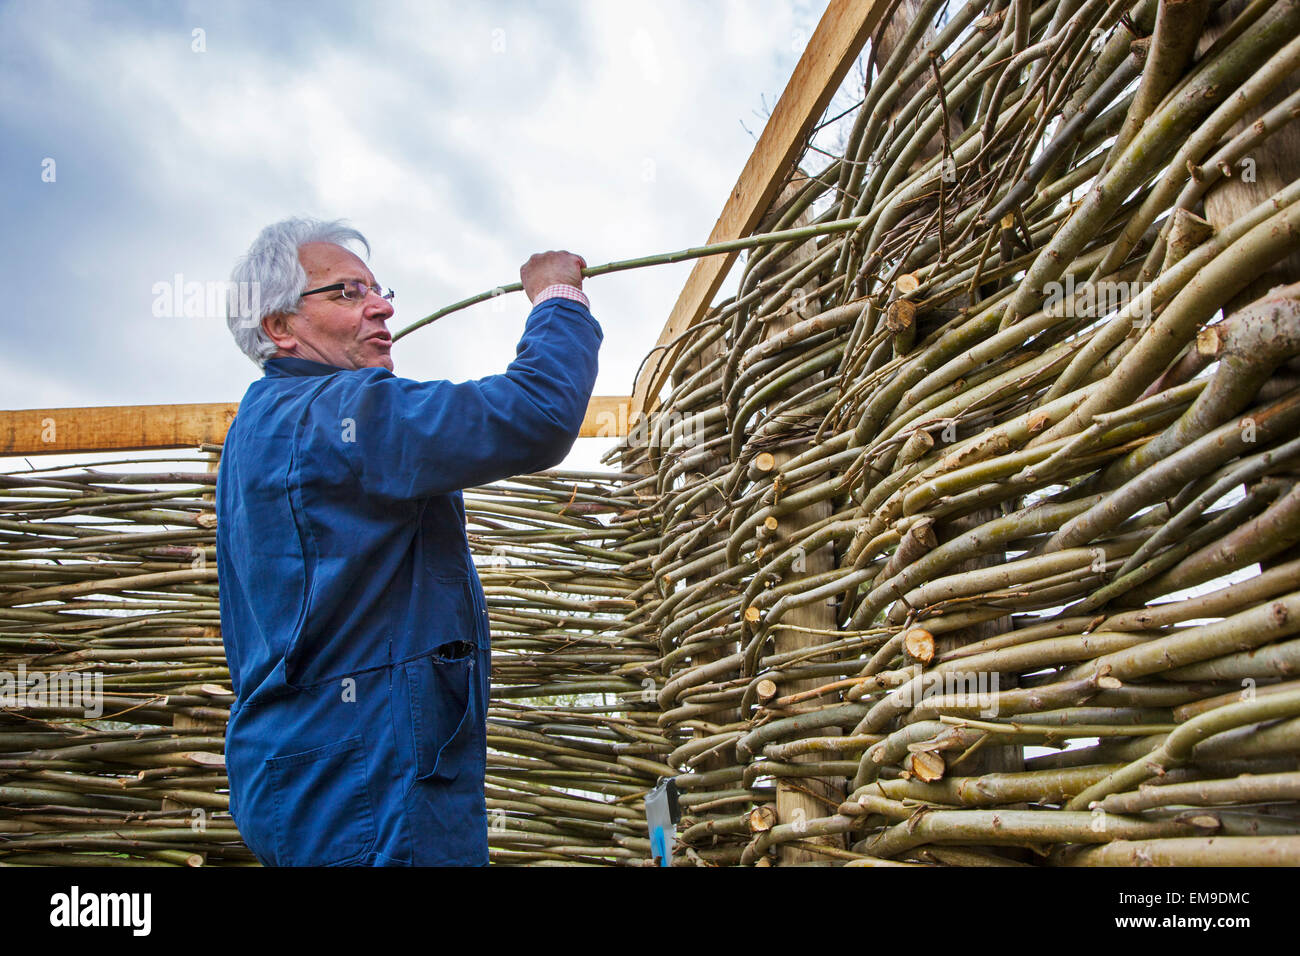 Craftsman making traditional wattle fence by weaving thin willow branches - Stock Image